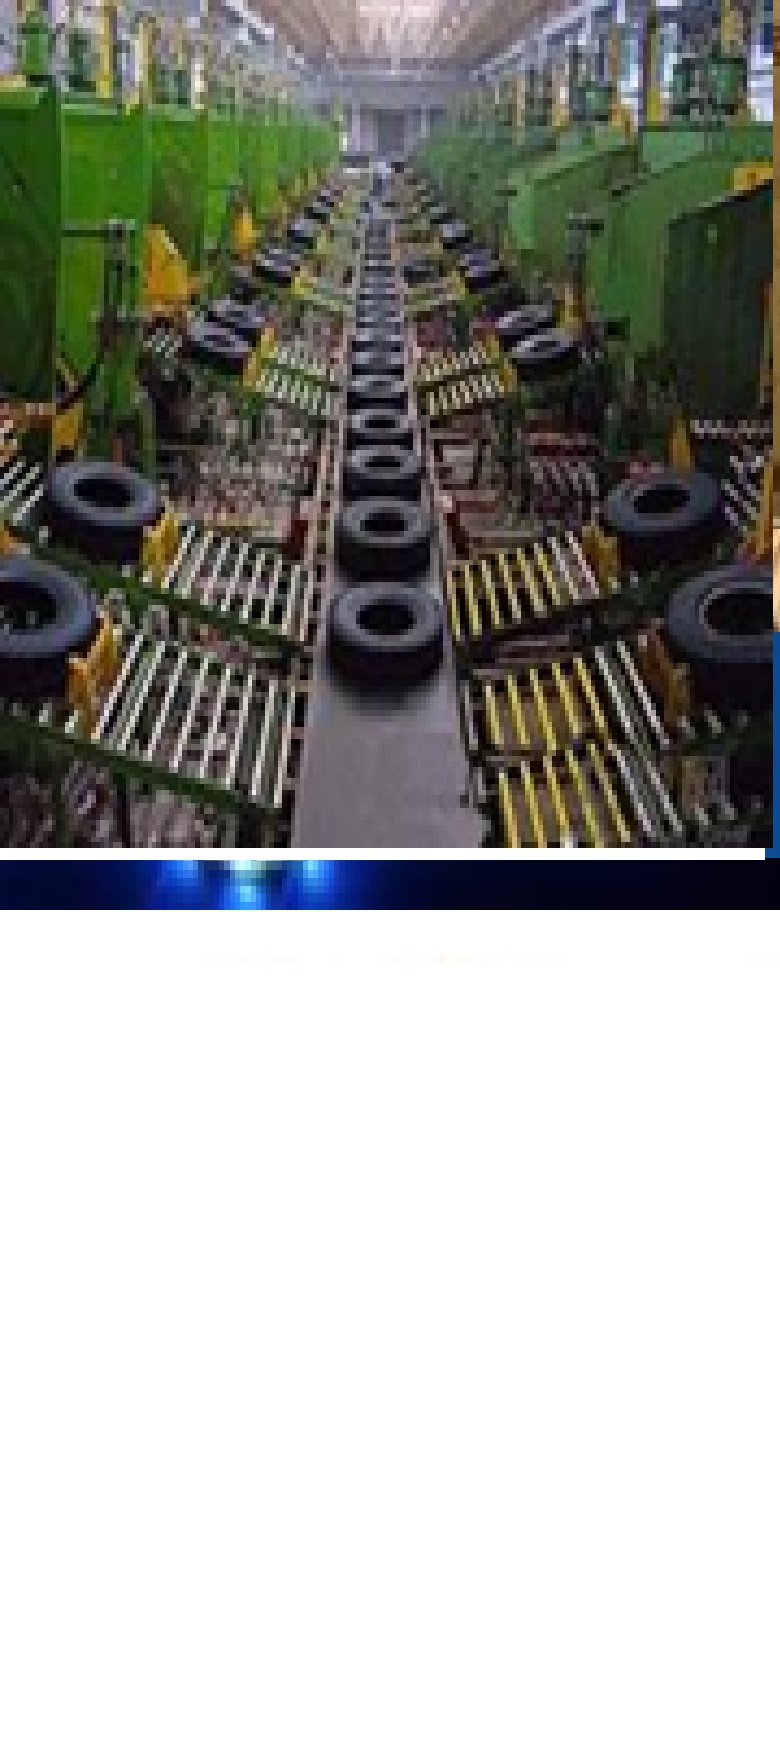 Rubber tire retreading production line